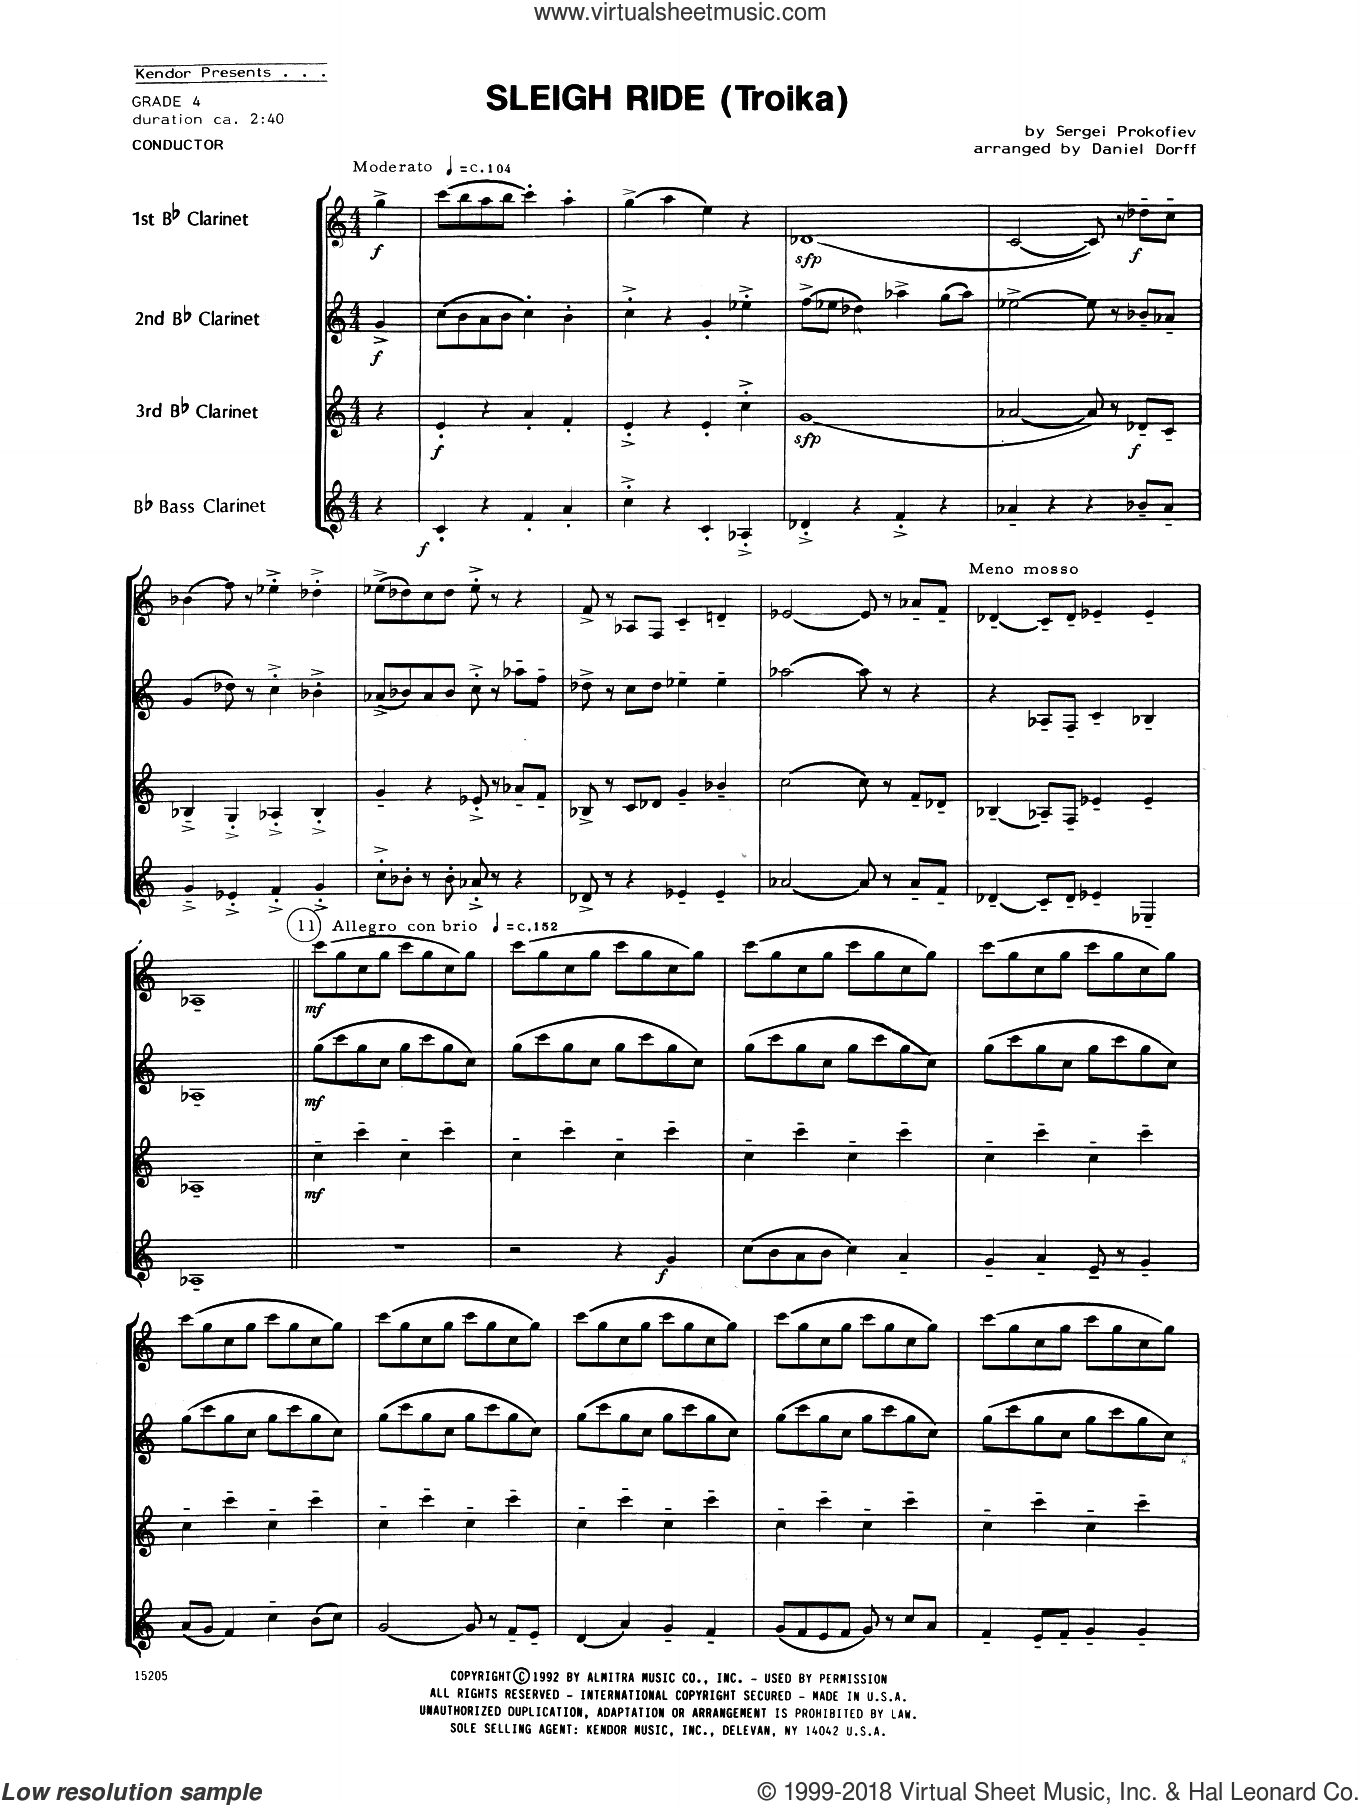 Sleigh Ride (Troika) (COMPLETE) sheet music for clarinet quartet by Daniel Dorff and Prokofiev, intermediate. Score Image Preview.